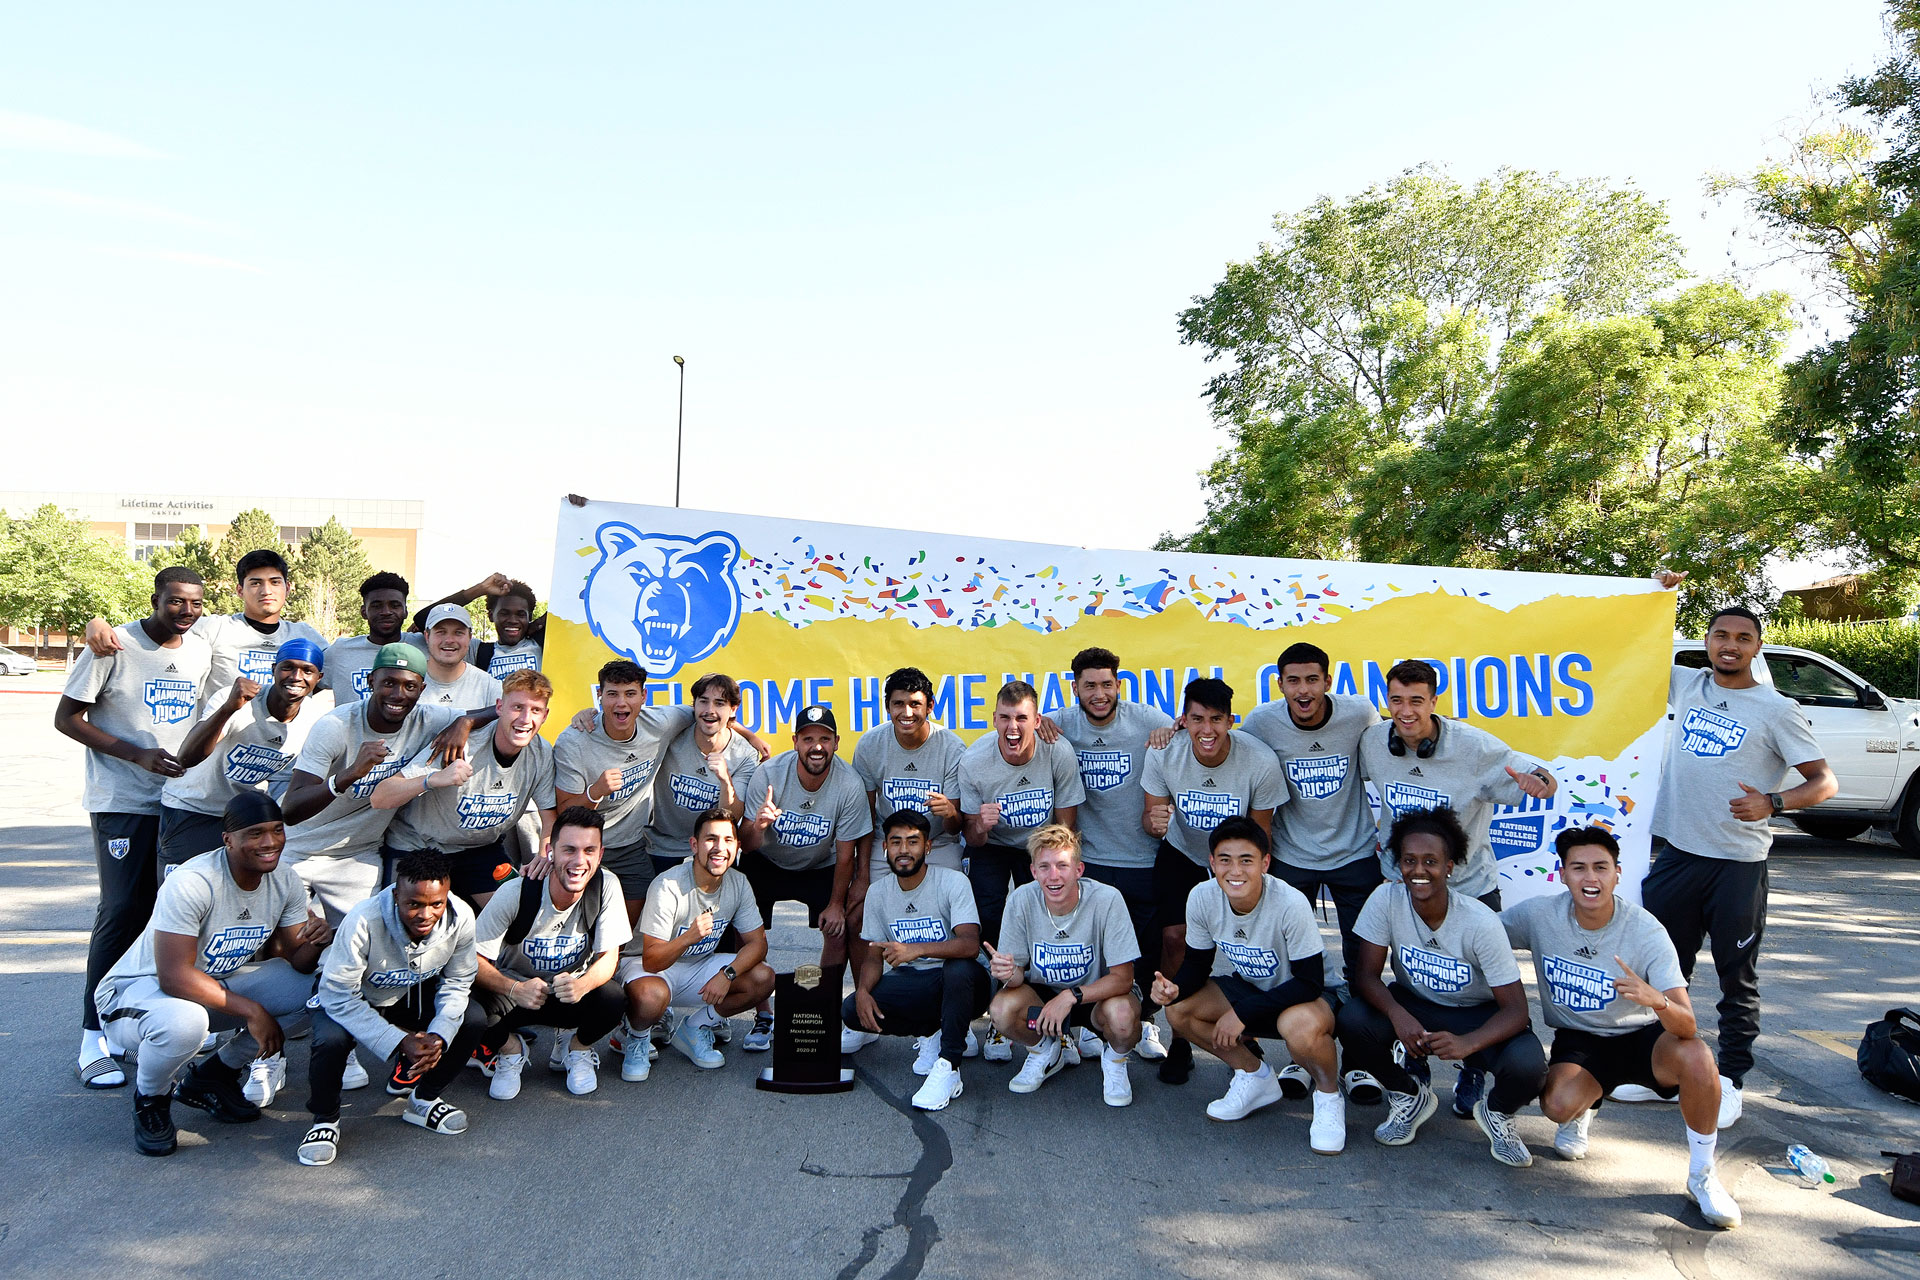 Men's soccer team at the championship welcome party